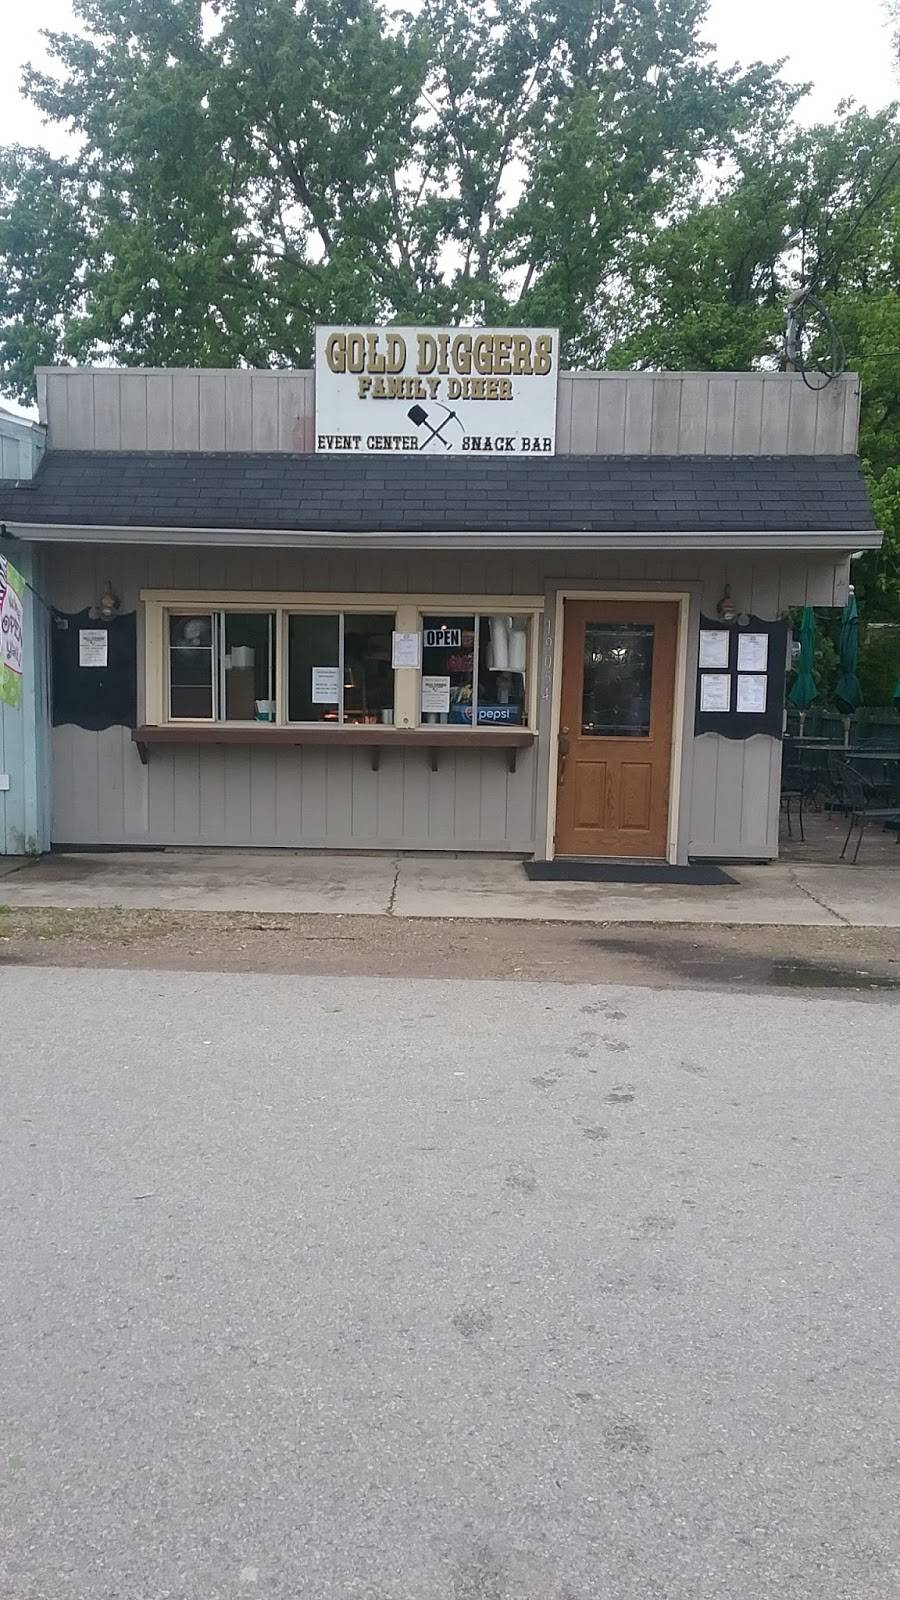 Gold Diggers Family Diner | restaurant | 19054 S. Main Street, Metamora, IN 47030, USA | 8122124123 OR +1 812-212-4123